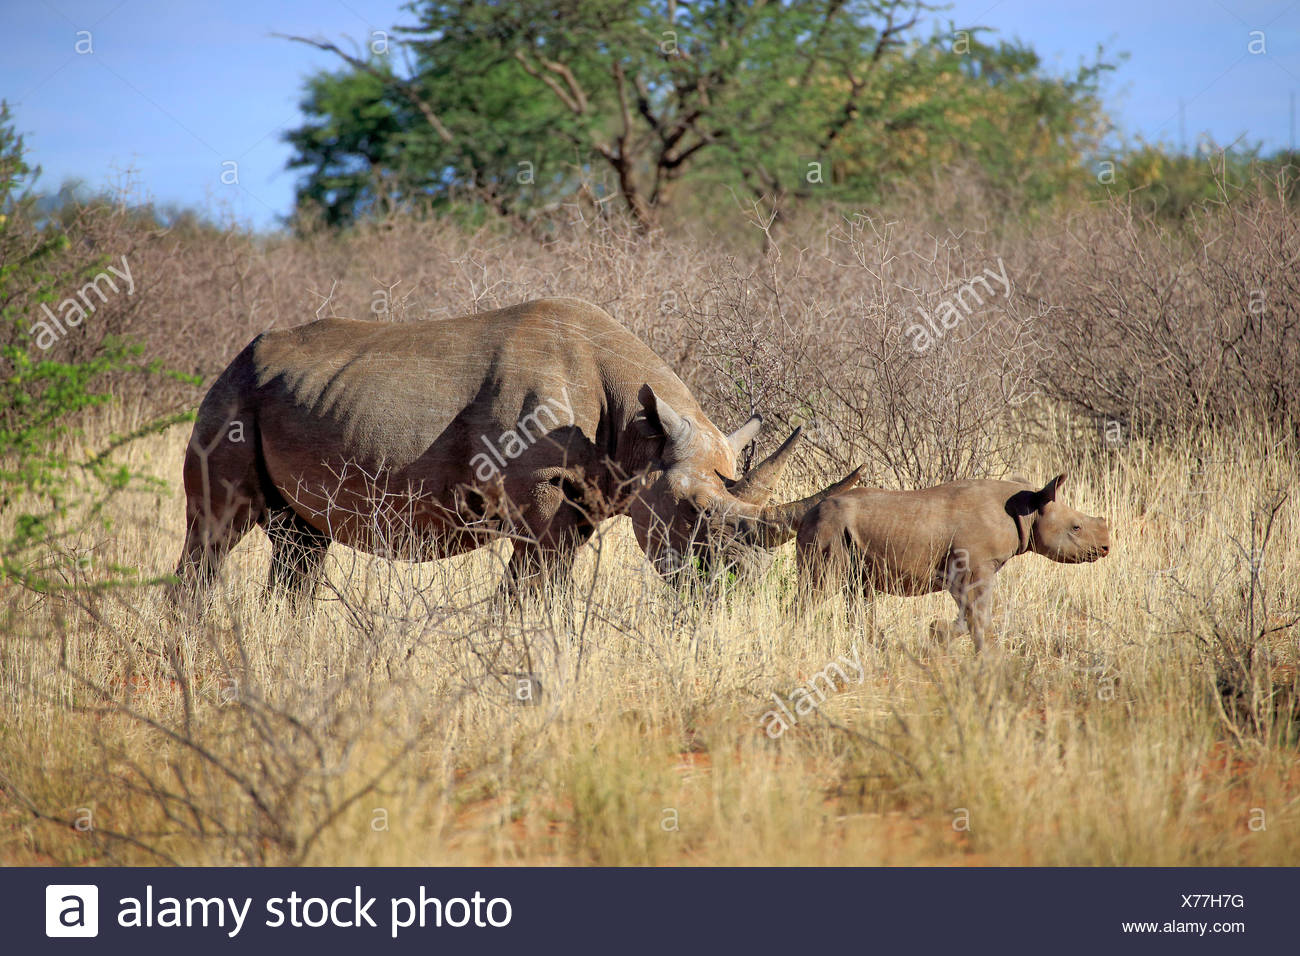 Black Rhinoceros, hook-lipped rhinoceros, adult female with young, Tswalu Game Reserve, Kalahari, Northern Cape, South Africa, Africa / (Diceros bicornis) - Stock Image